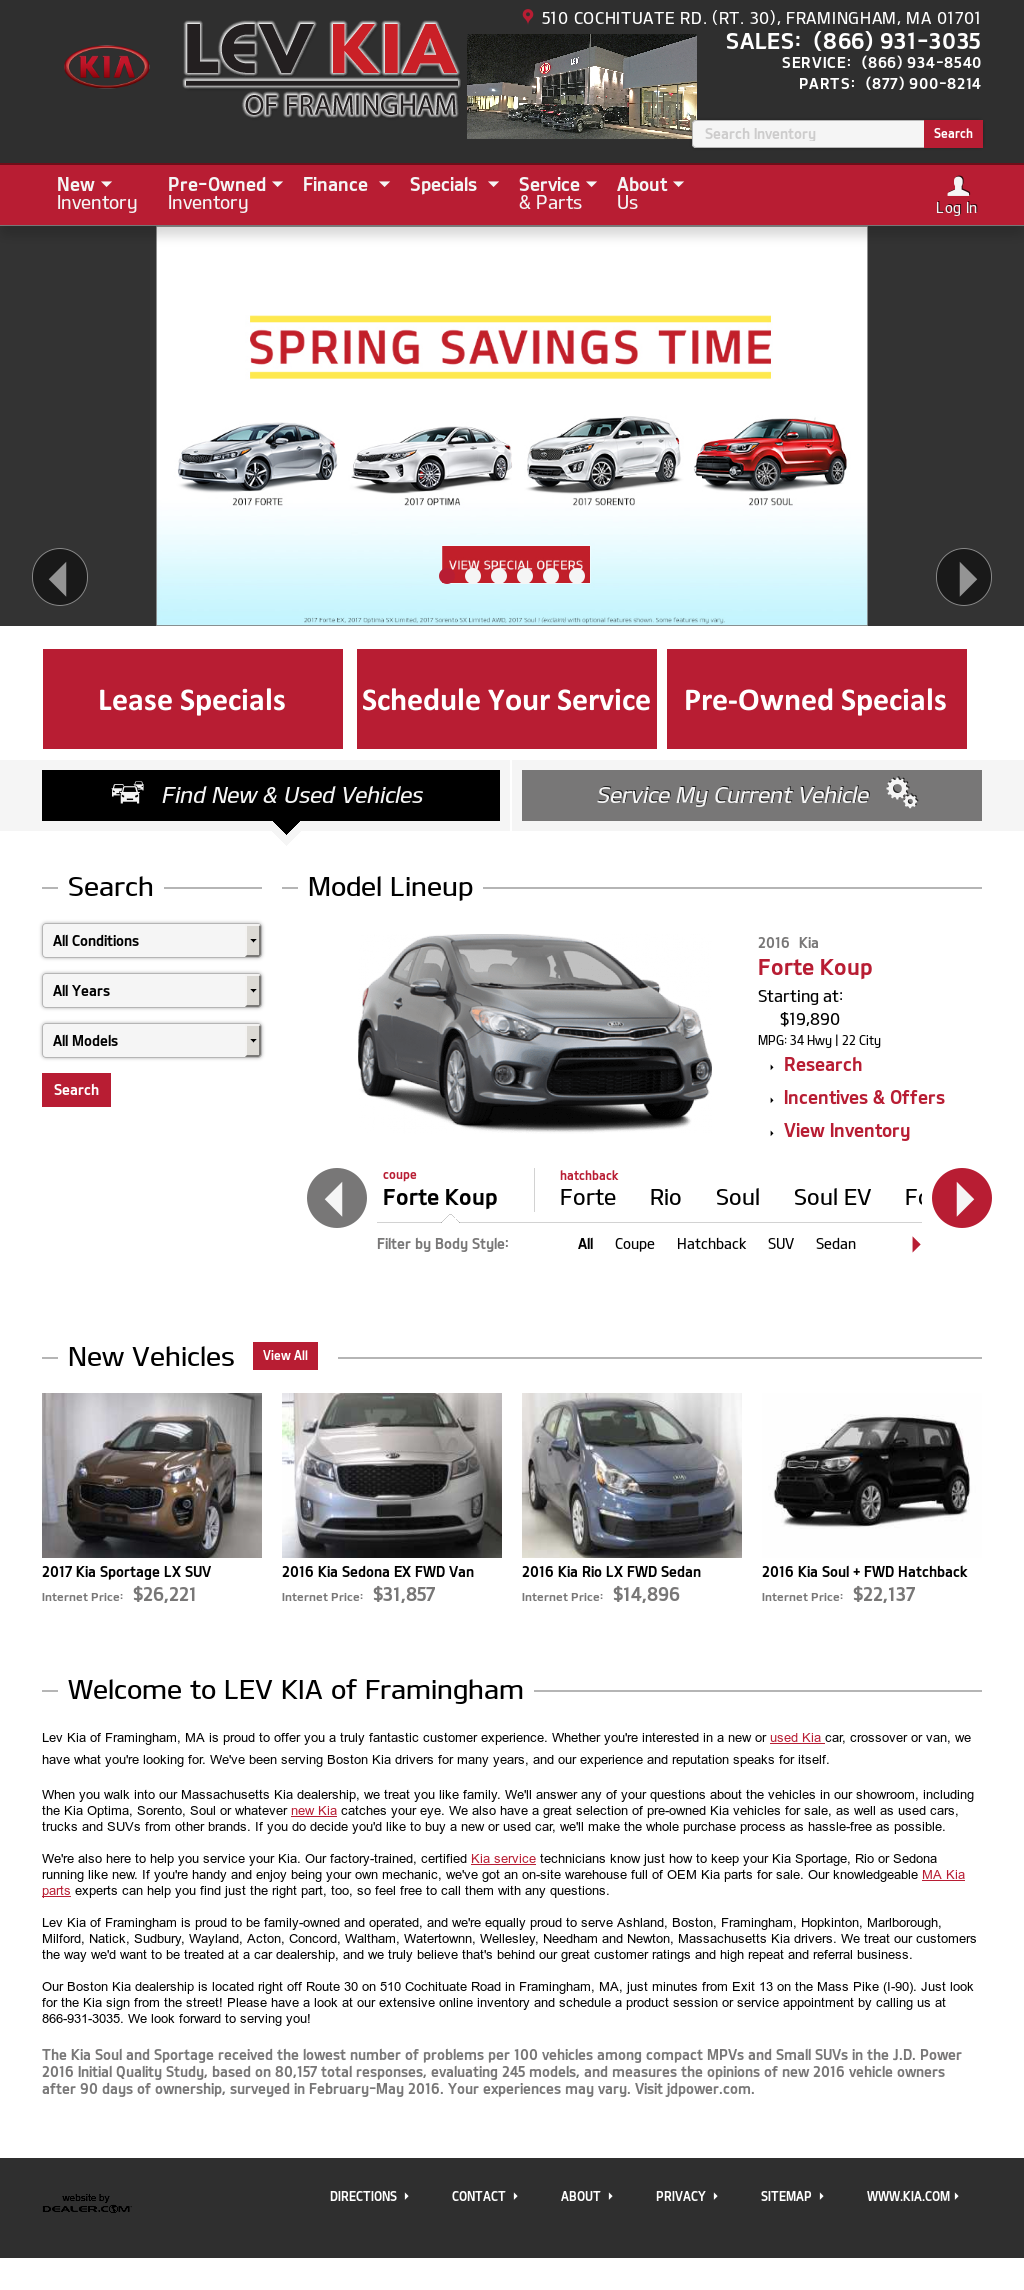 kia entry if world website pr guide sub design experience brand